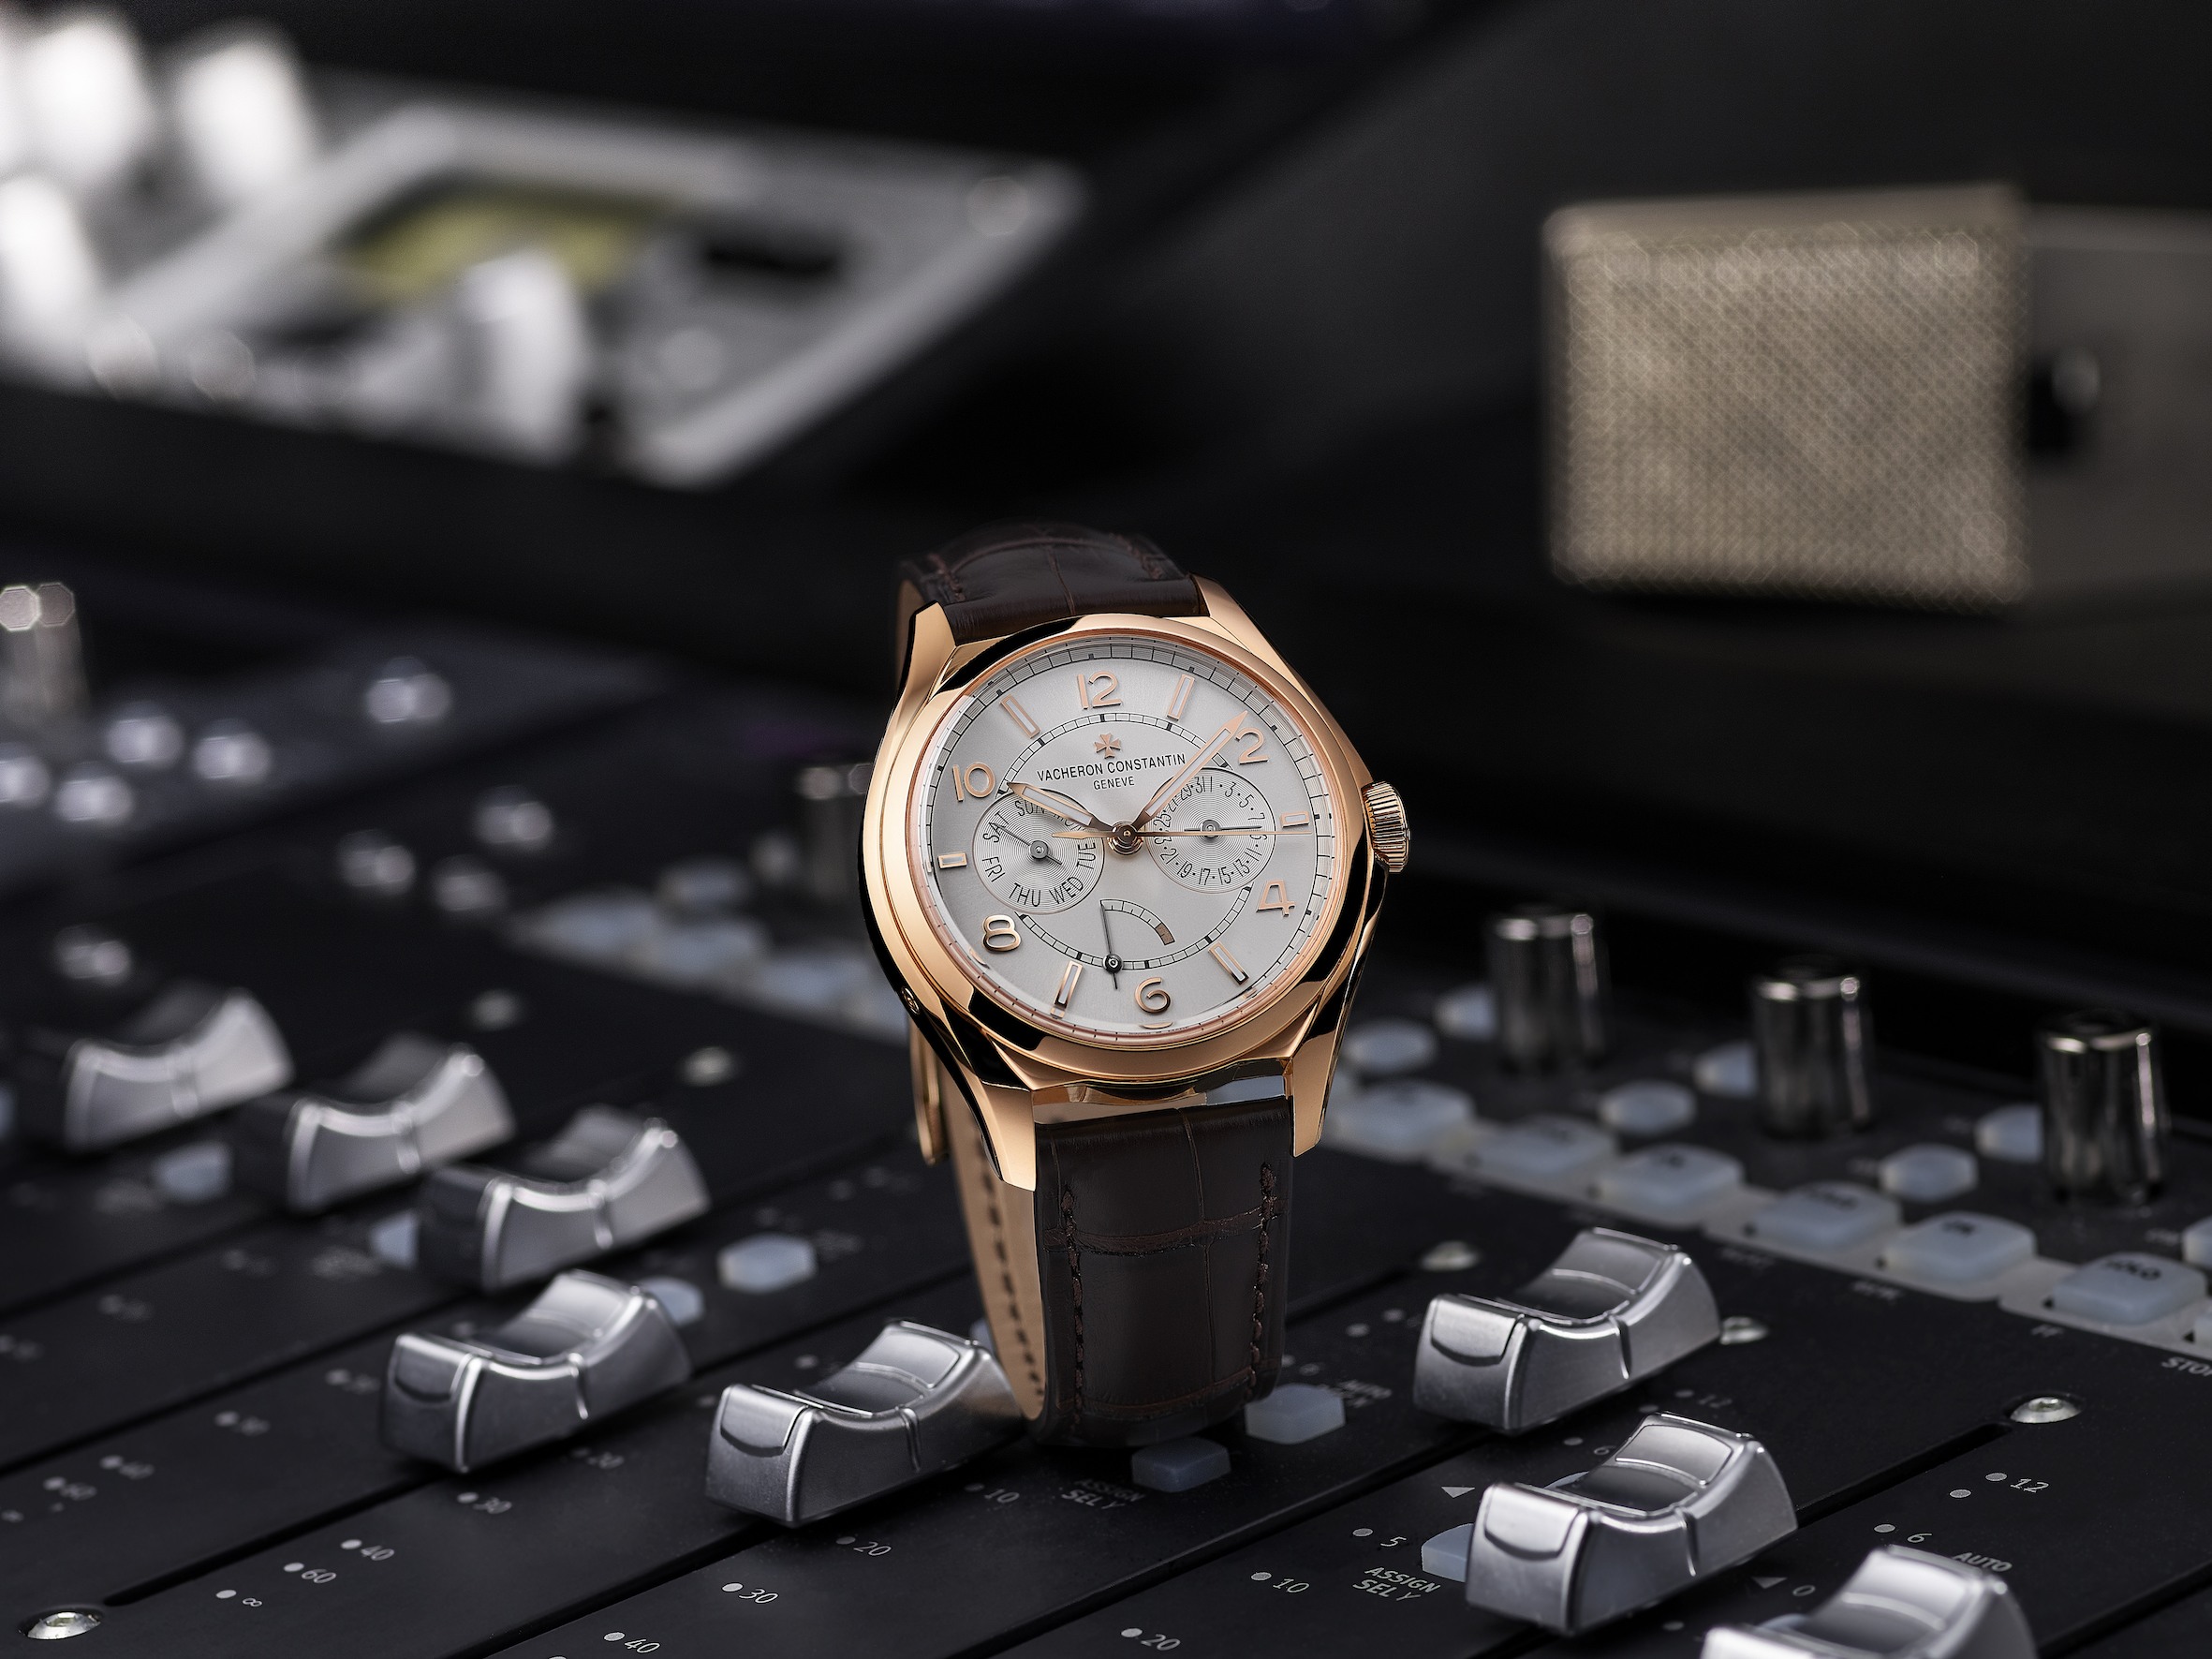 Vacheron Constantin FIFTYSIX day-date with power-reserve indicator. The day-date FIFTYSIX with its 40 mm-diameter case in steel or 18 carats 5N pink gold provides additional functions